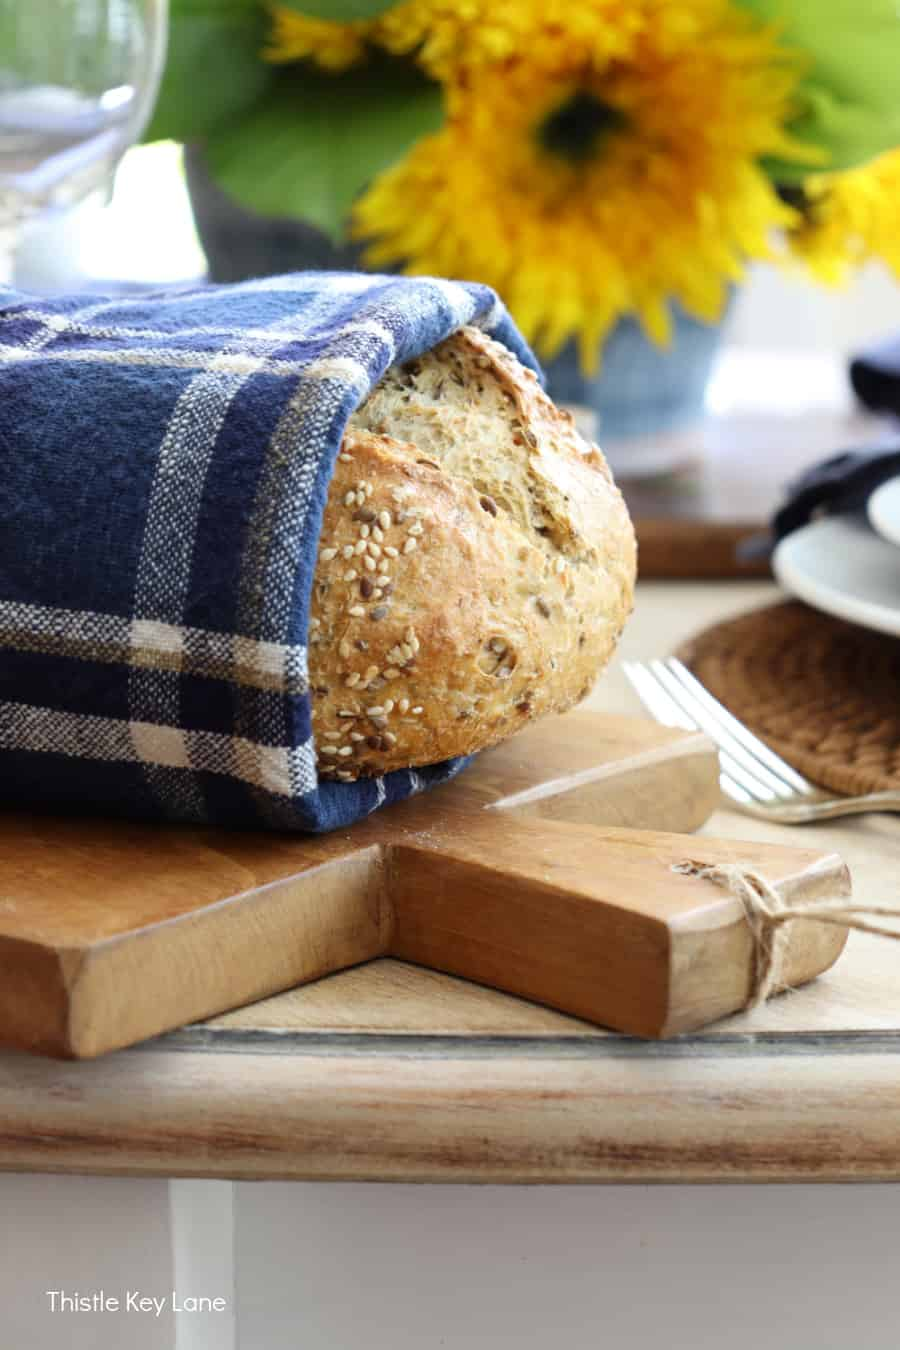 Harvest bread on a serving board.